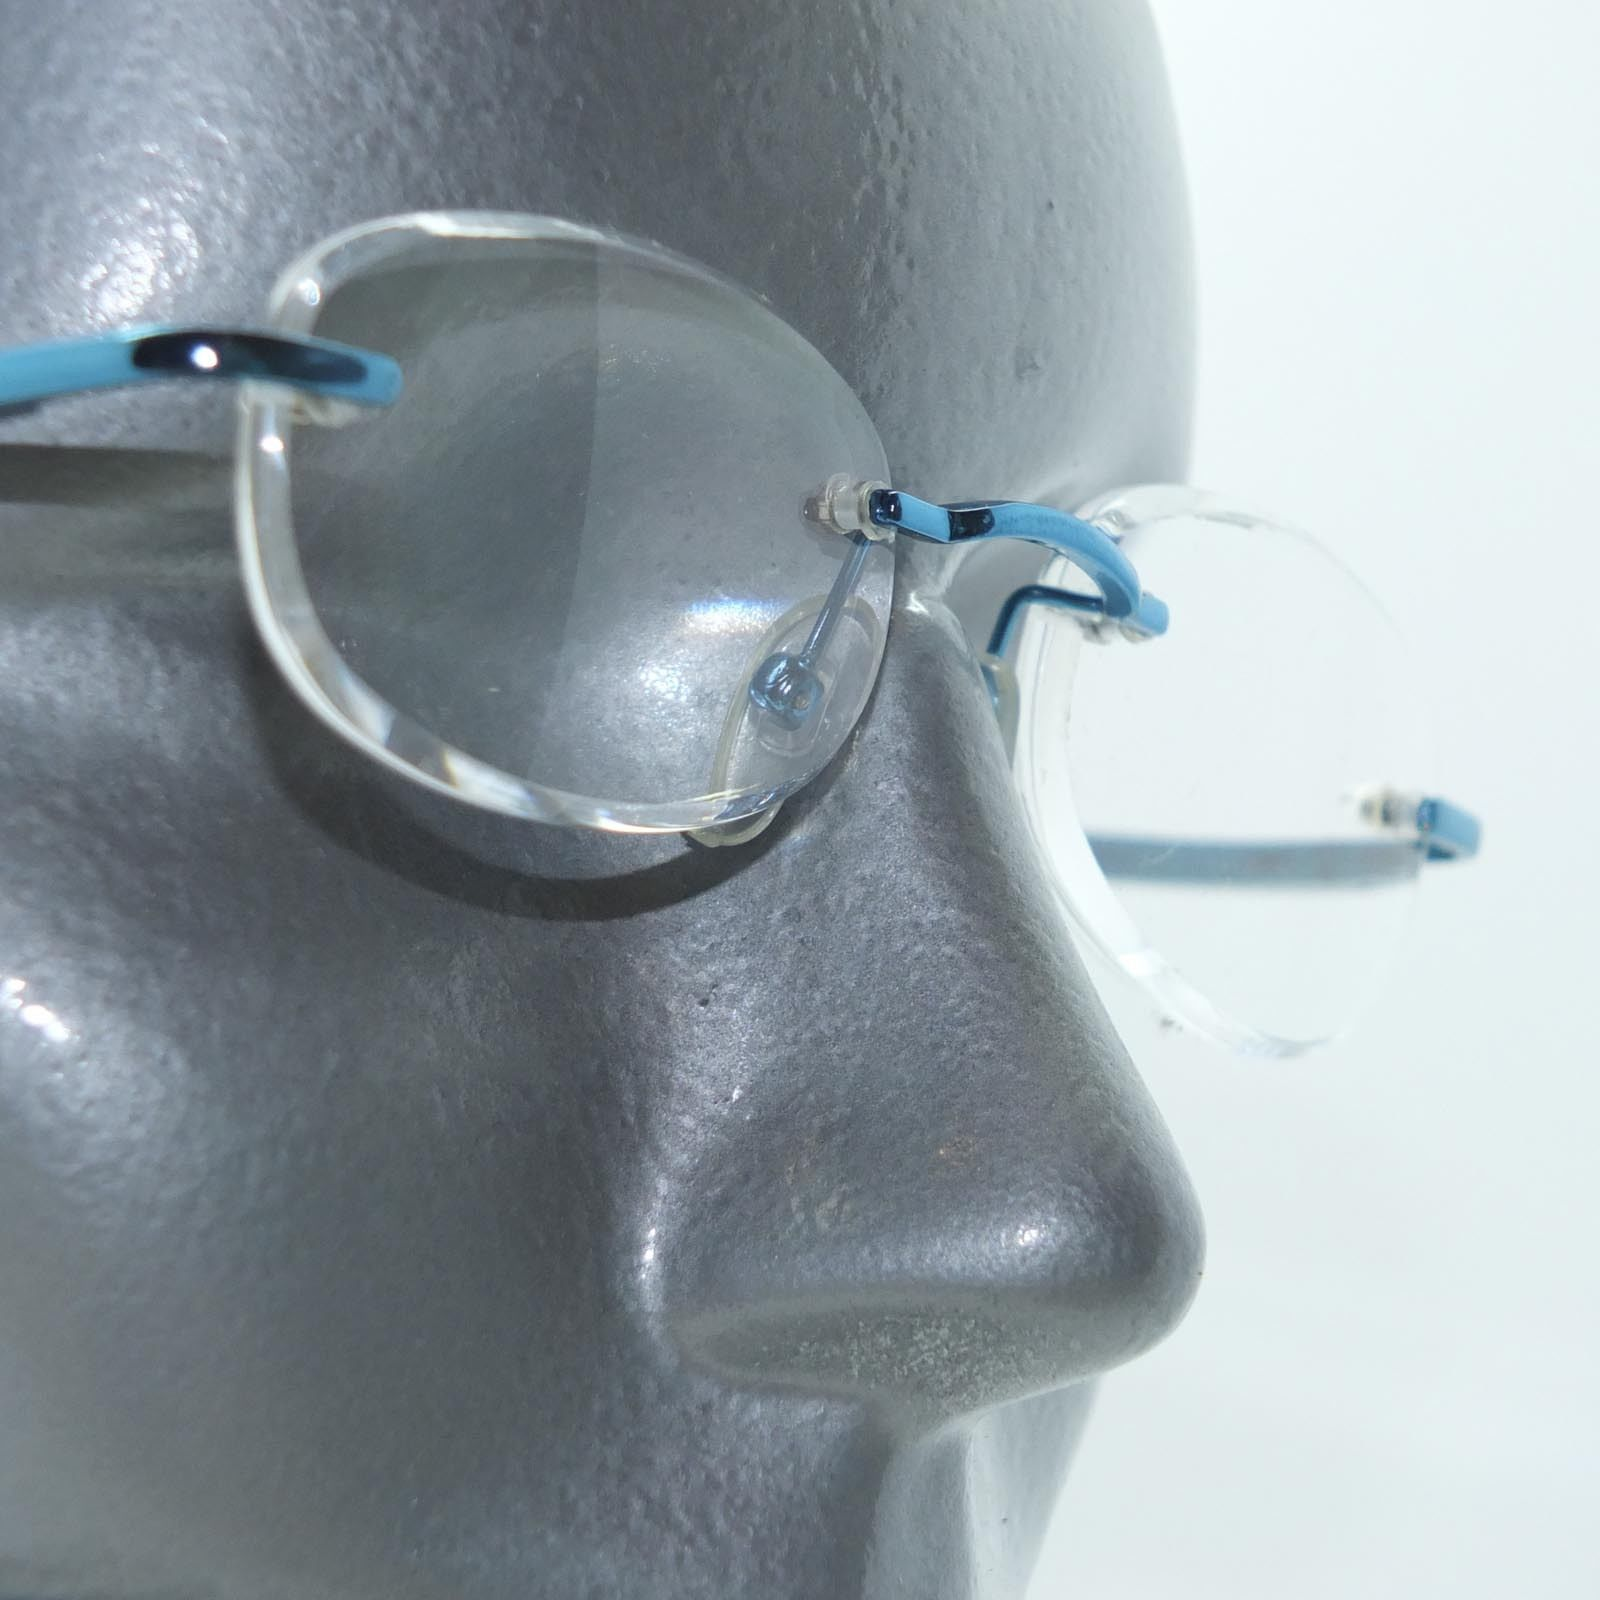 Primary image for Frameless Invisible Lens Electric Blue Trim Reading Glasses +2.75 Strength